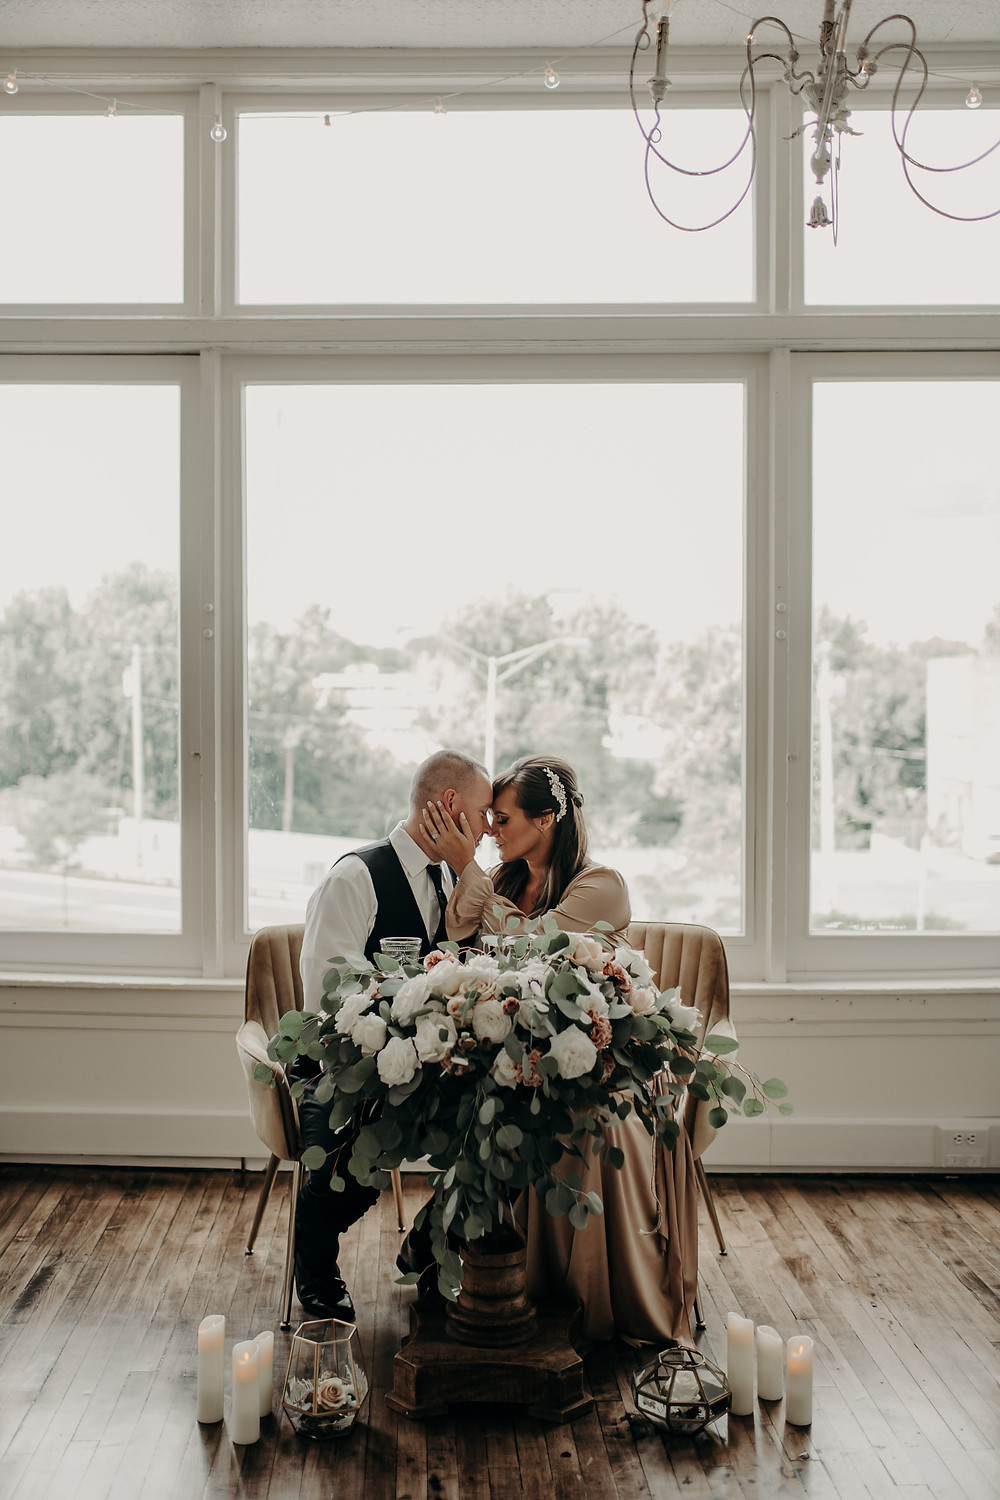 Upstate New York wedding inspiration